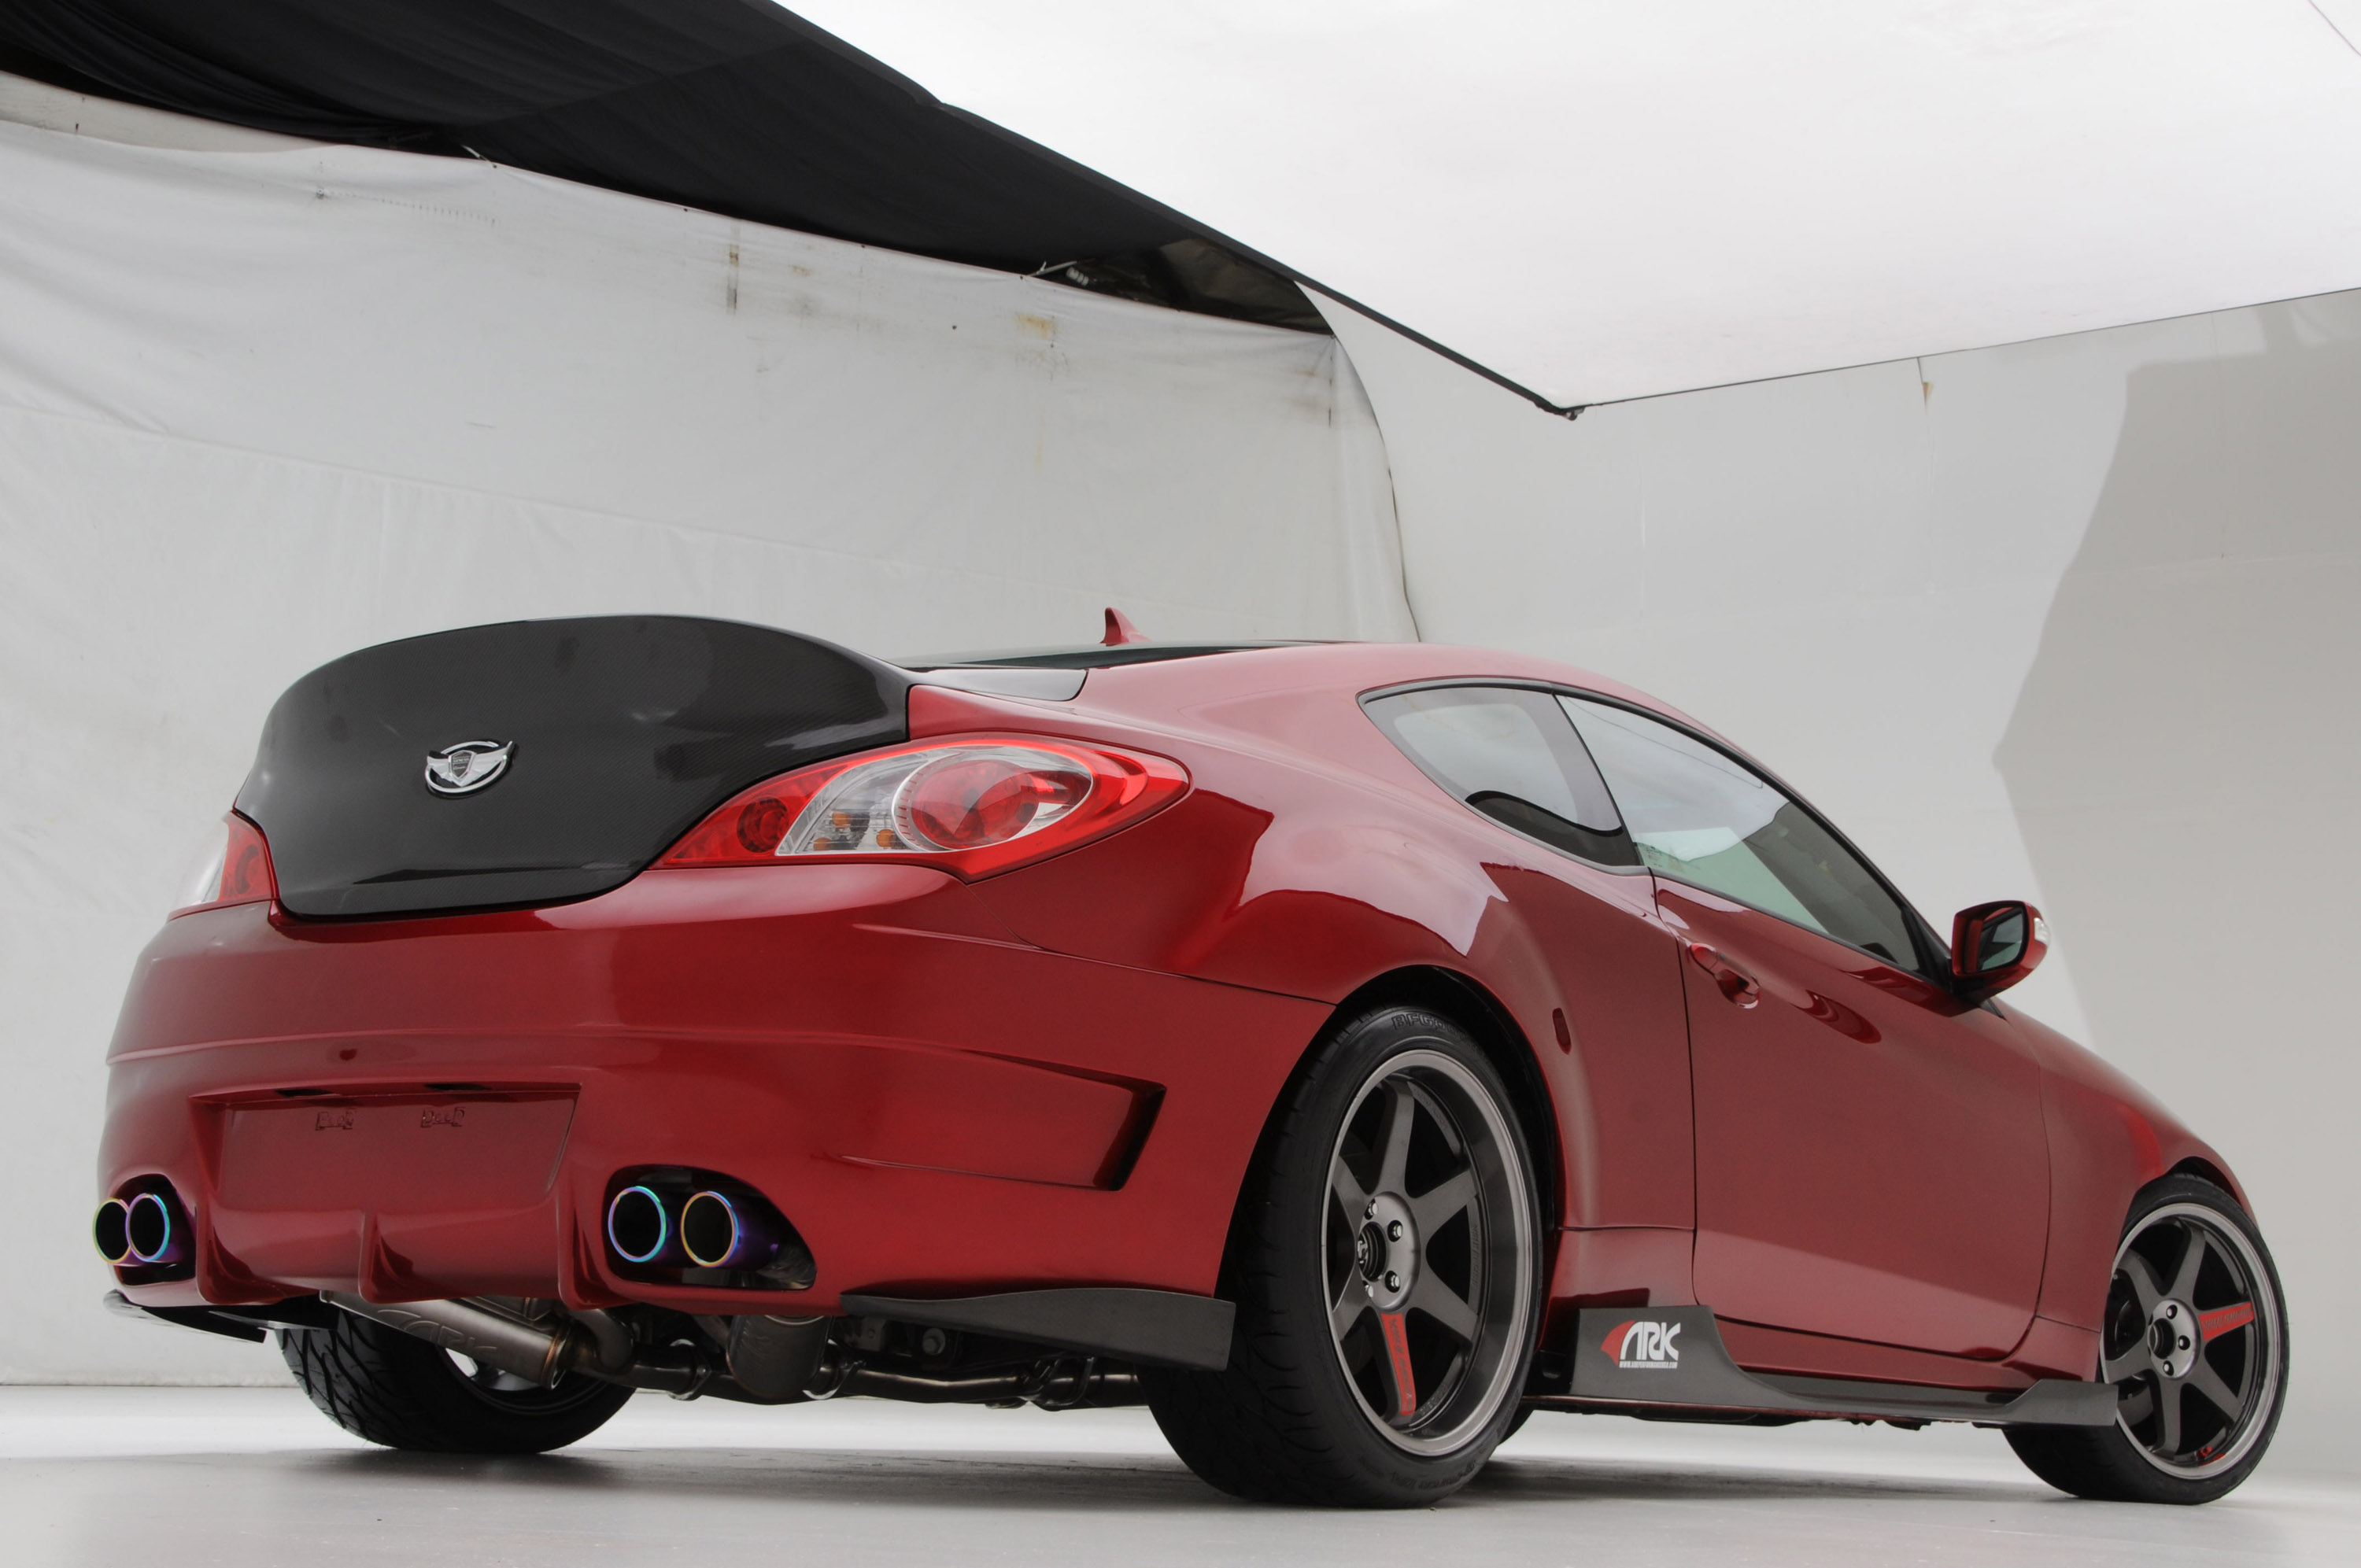 Superb ARK Performance Hyundai Genesis Coupe